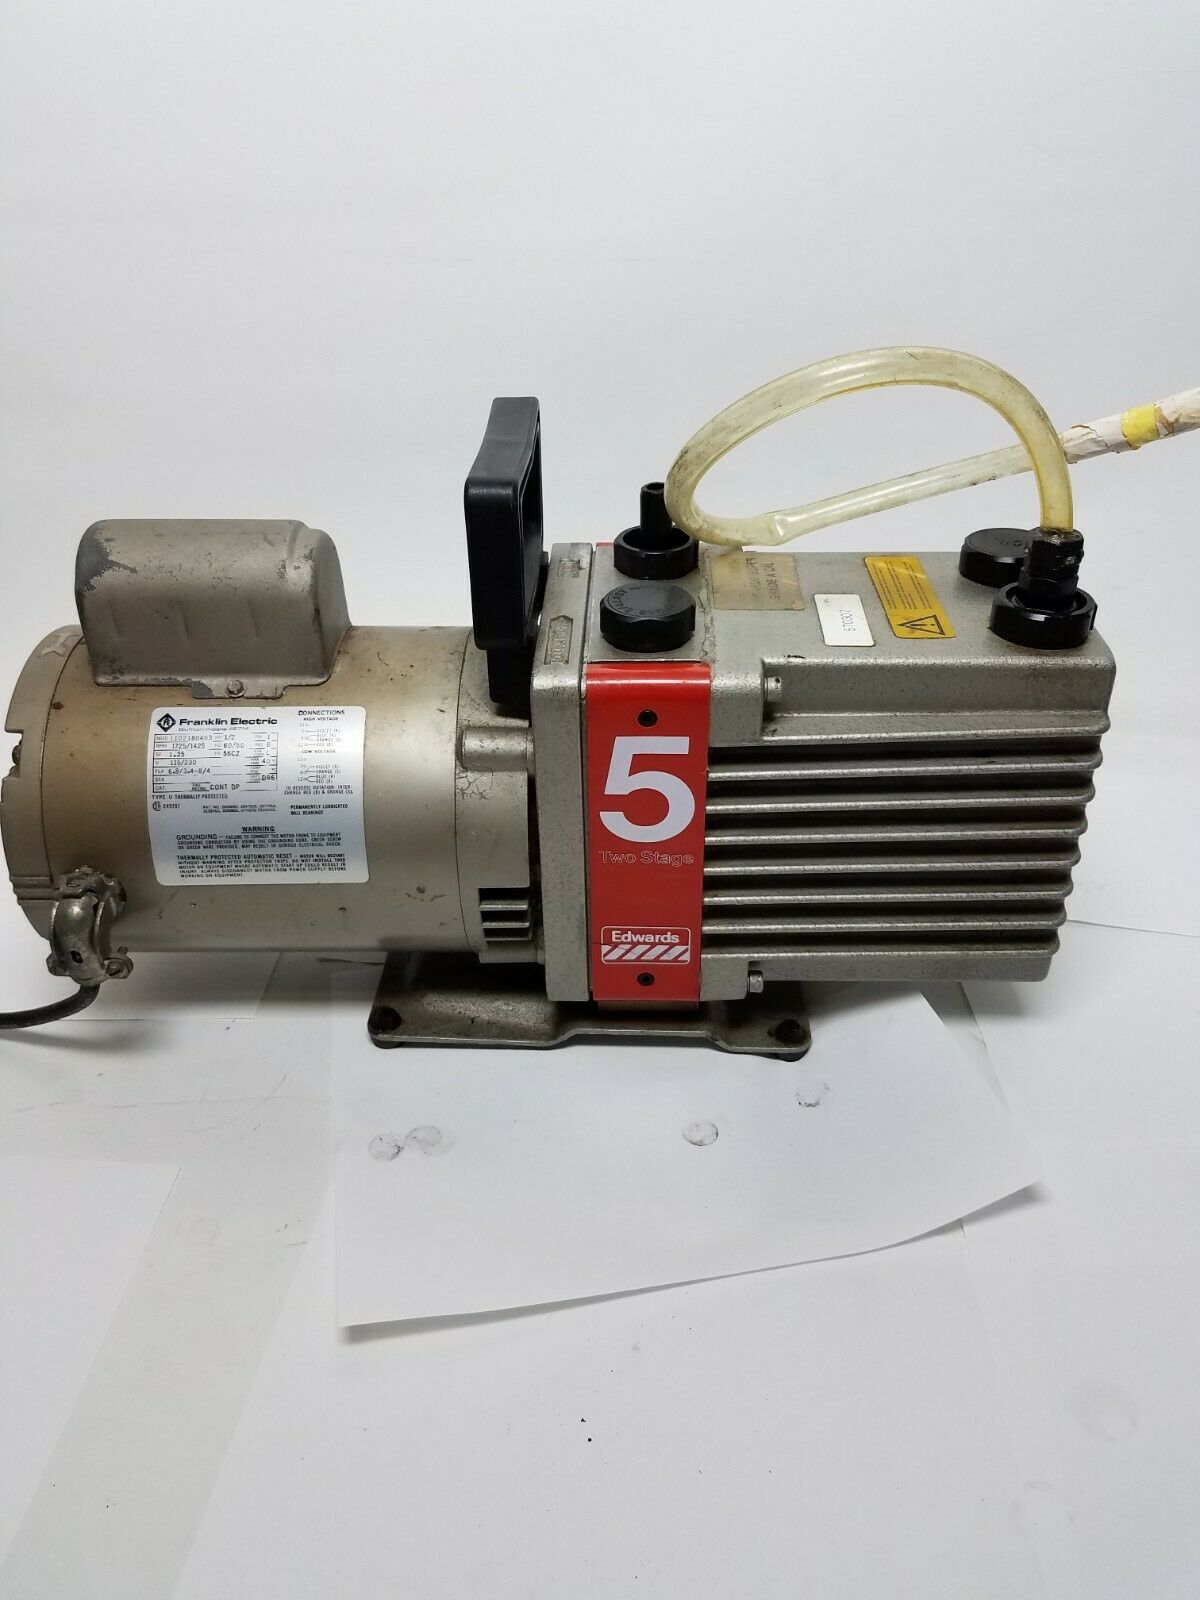 EDWARDS 5 E2M5 TWO-STAGE HIGH VACUUM PUMP TESTED AND WORKING